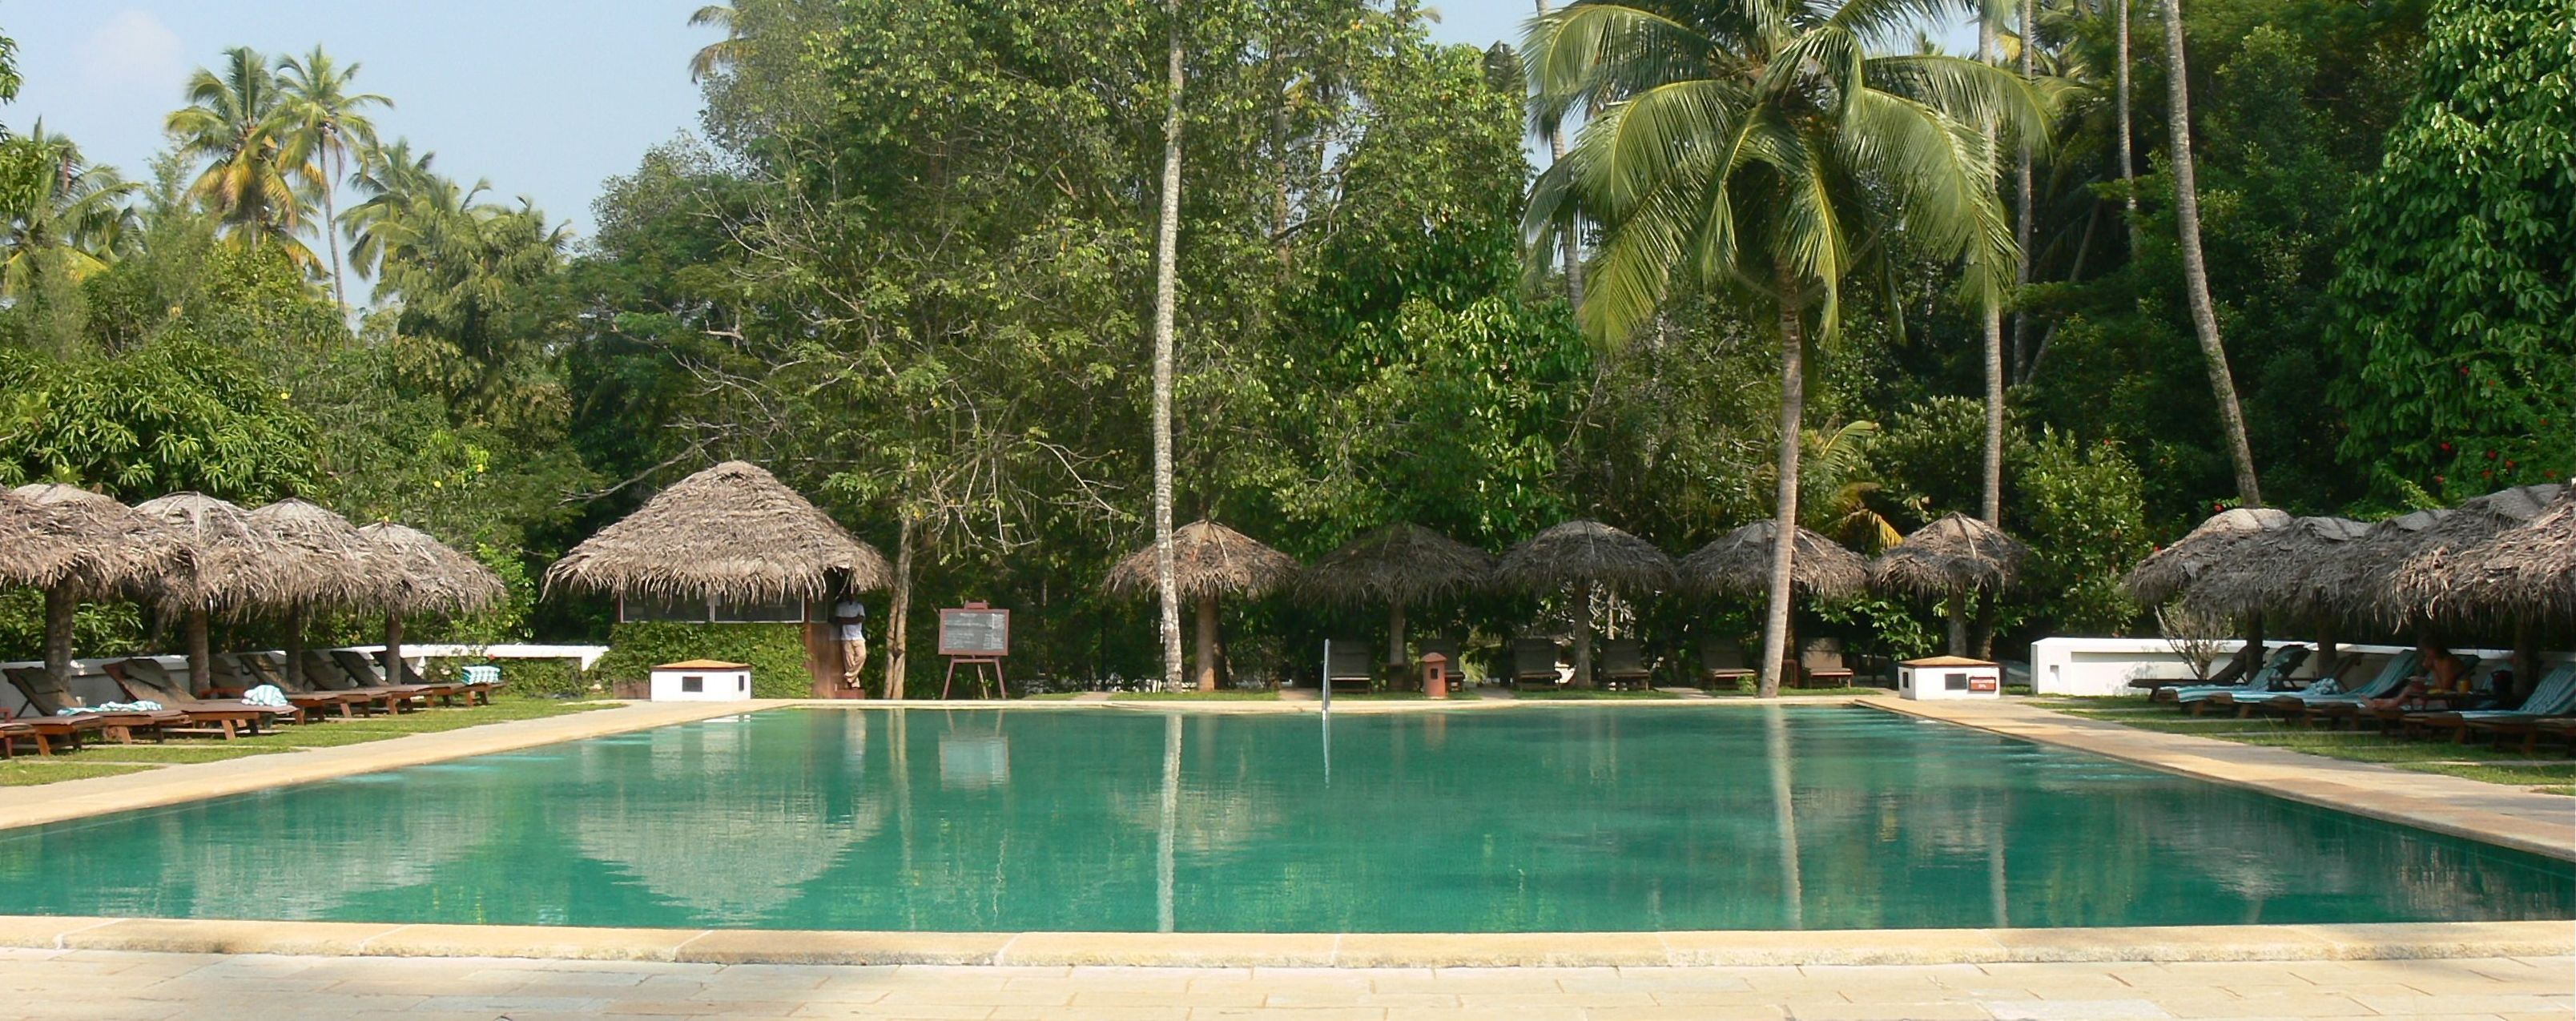 marari-beach-resort-kerala-pool